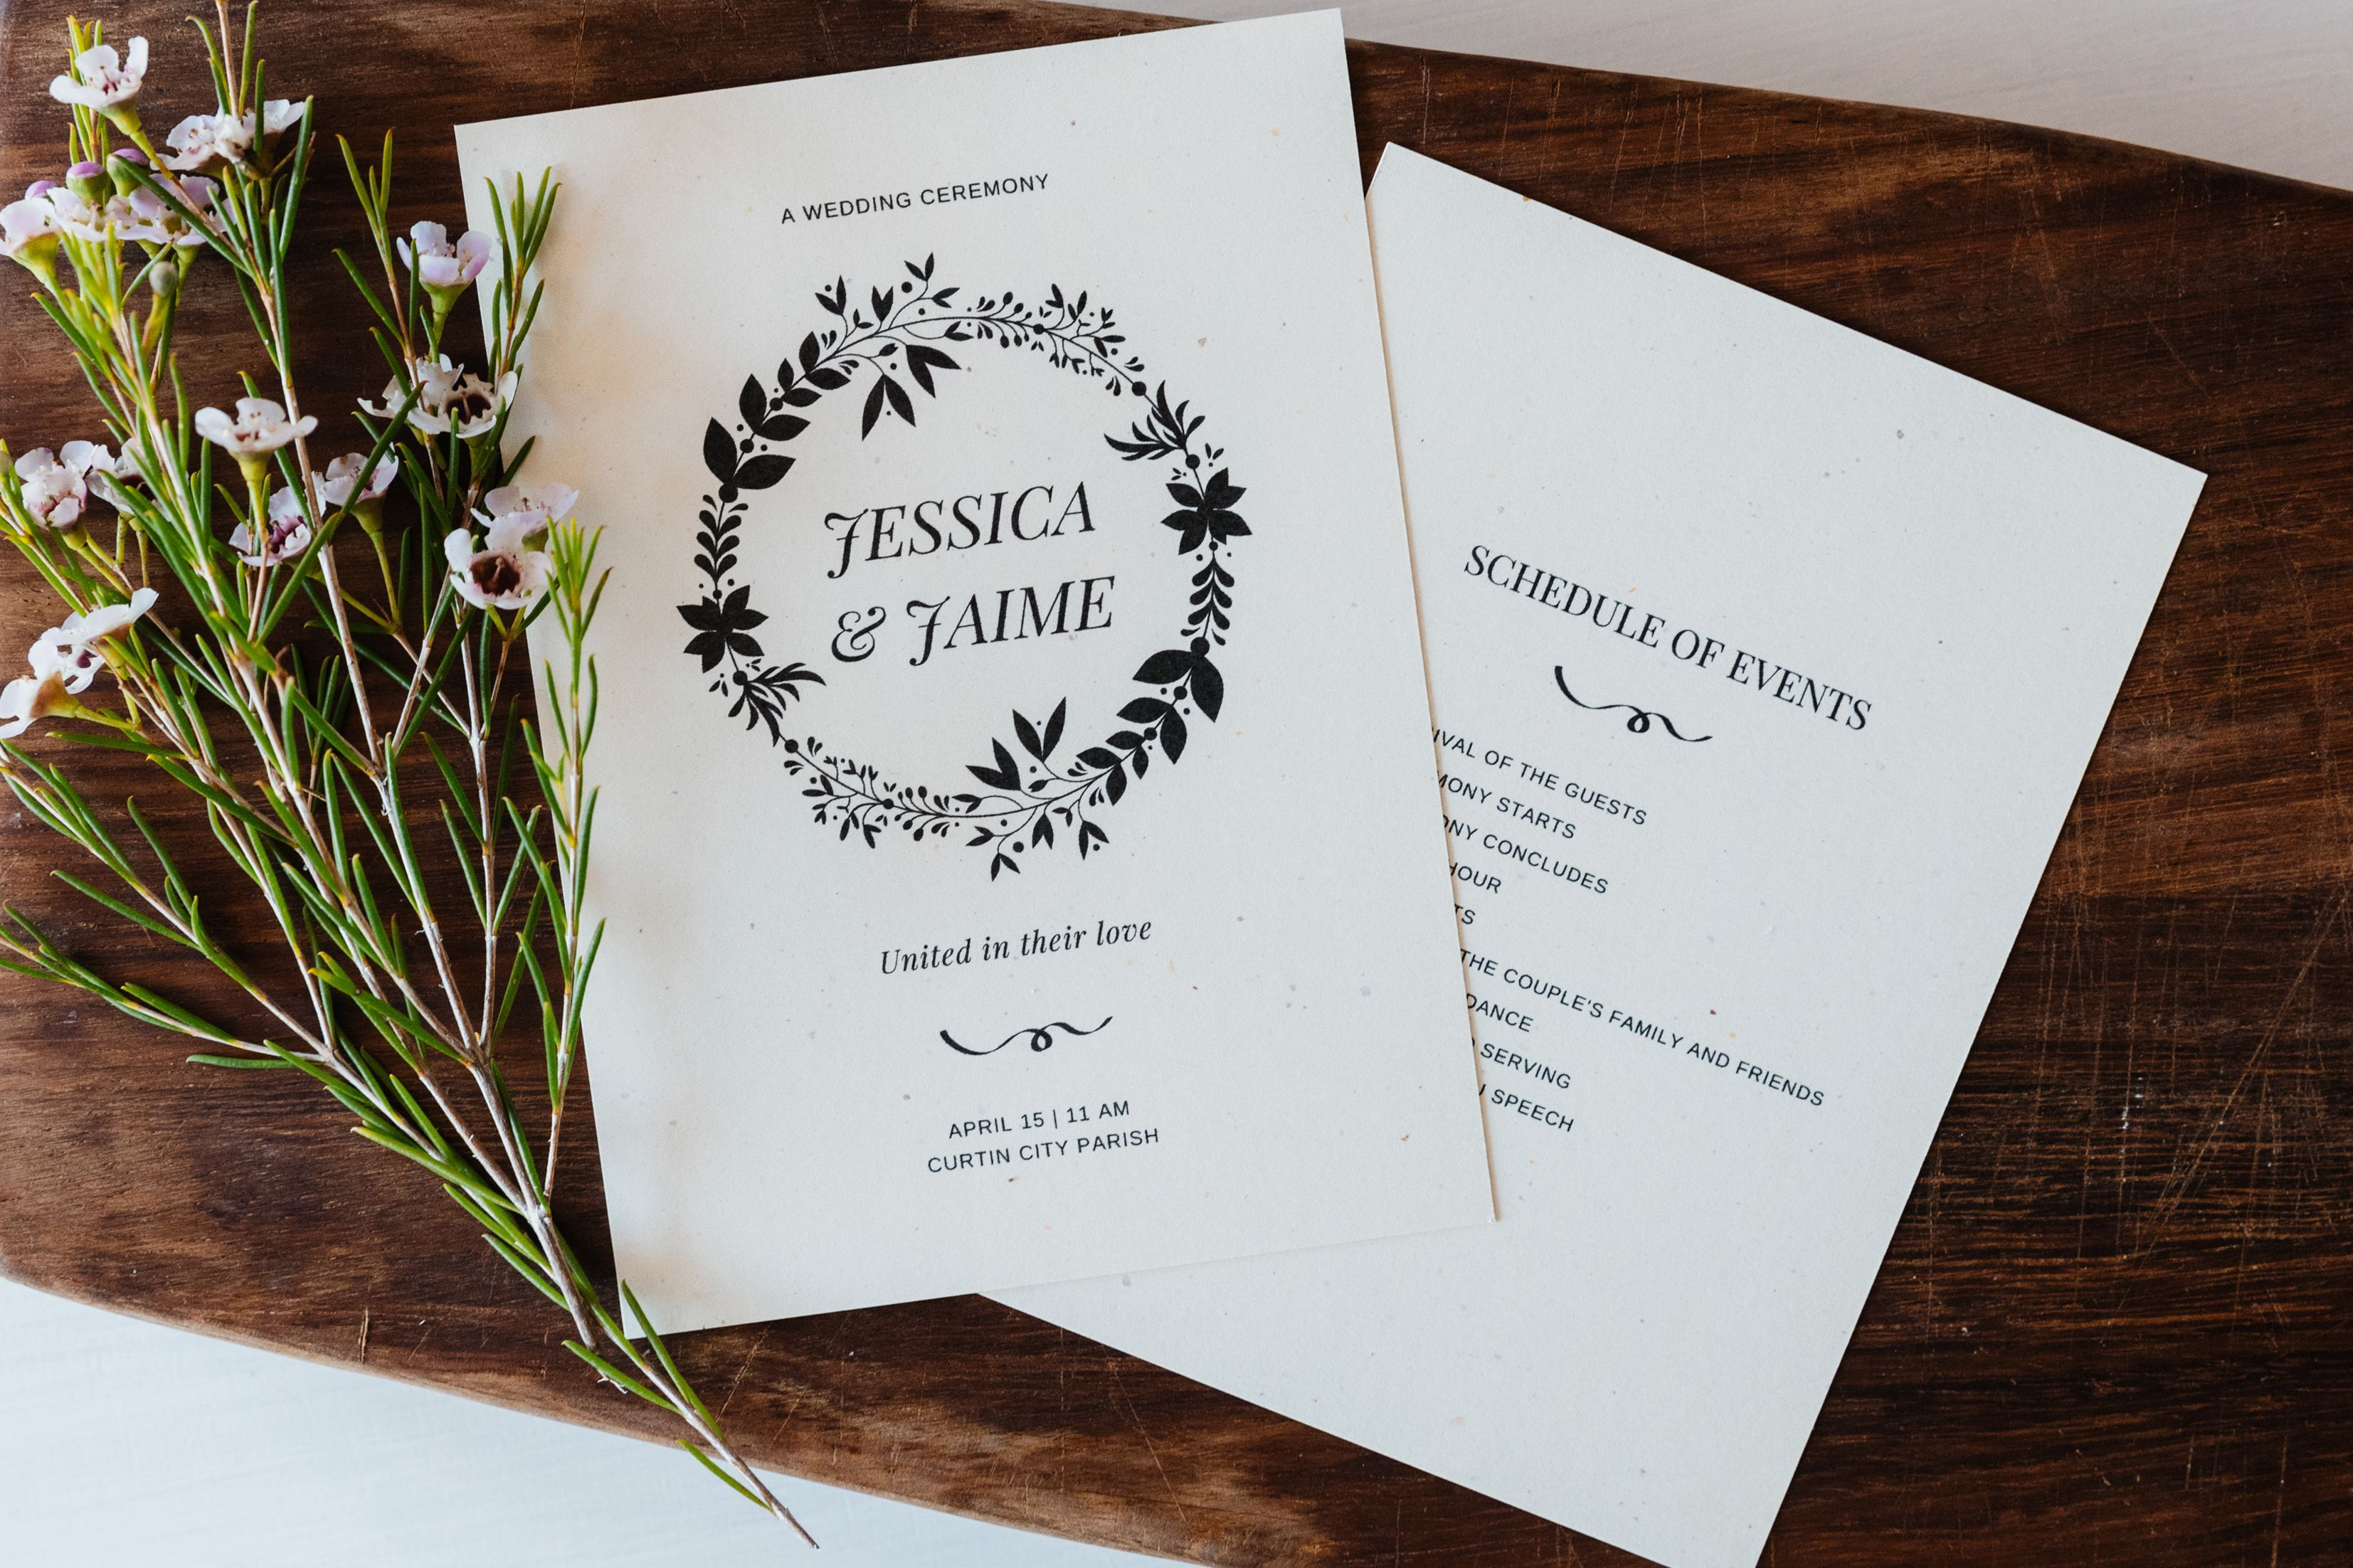 005 Top Wedding Order Of Service Template Free Inspiration  Front Cover Download ChurchFull